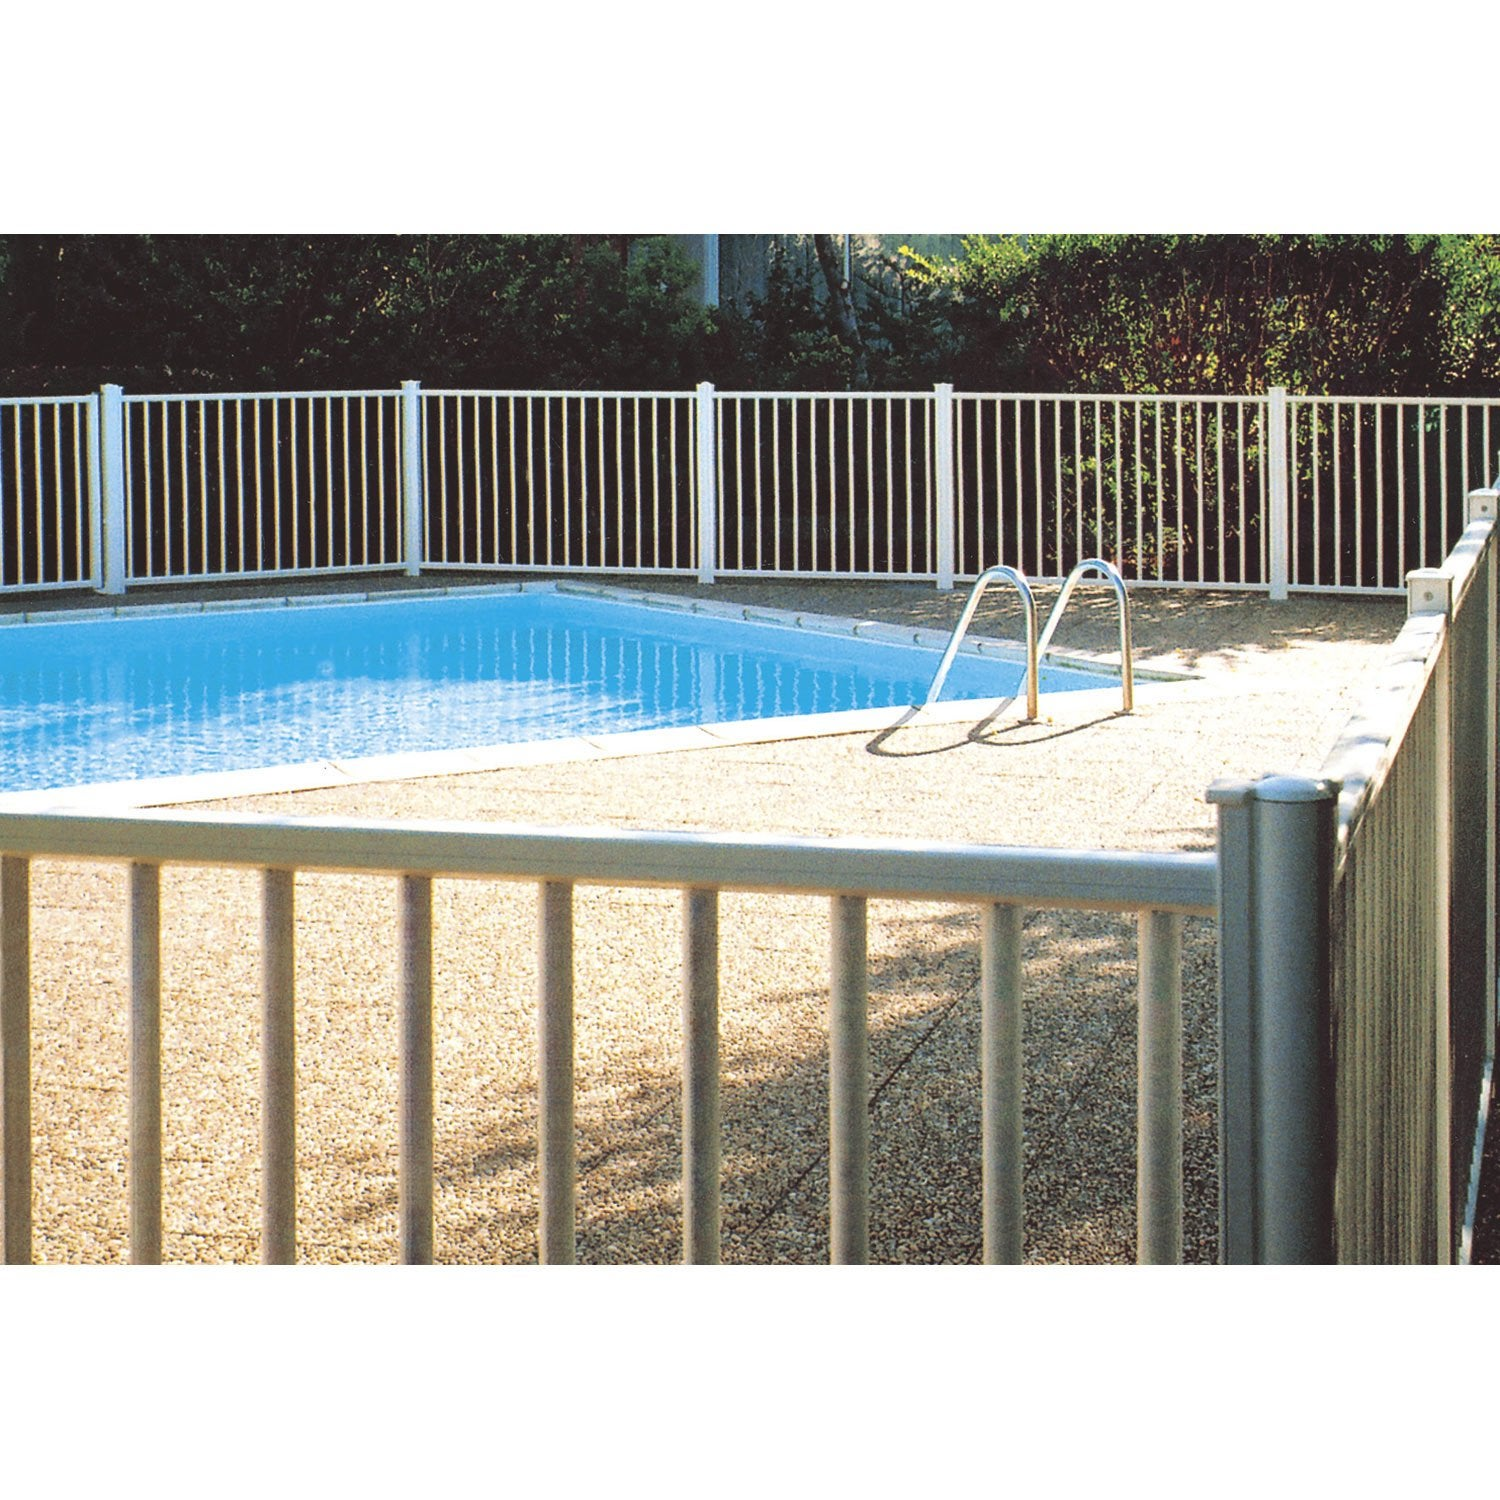 Barri re pour piscine aluminium issambres blanc 9010 h for Barriere piscine aqualux